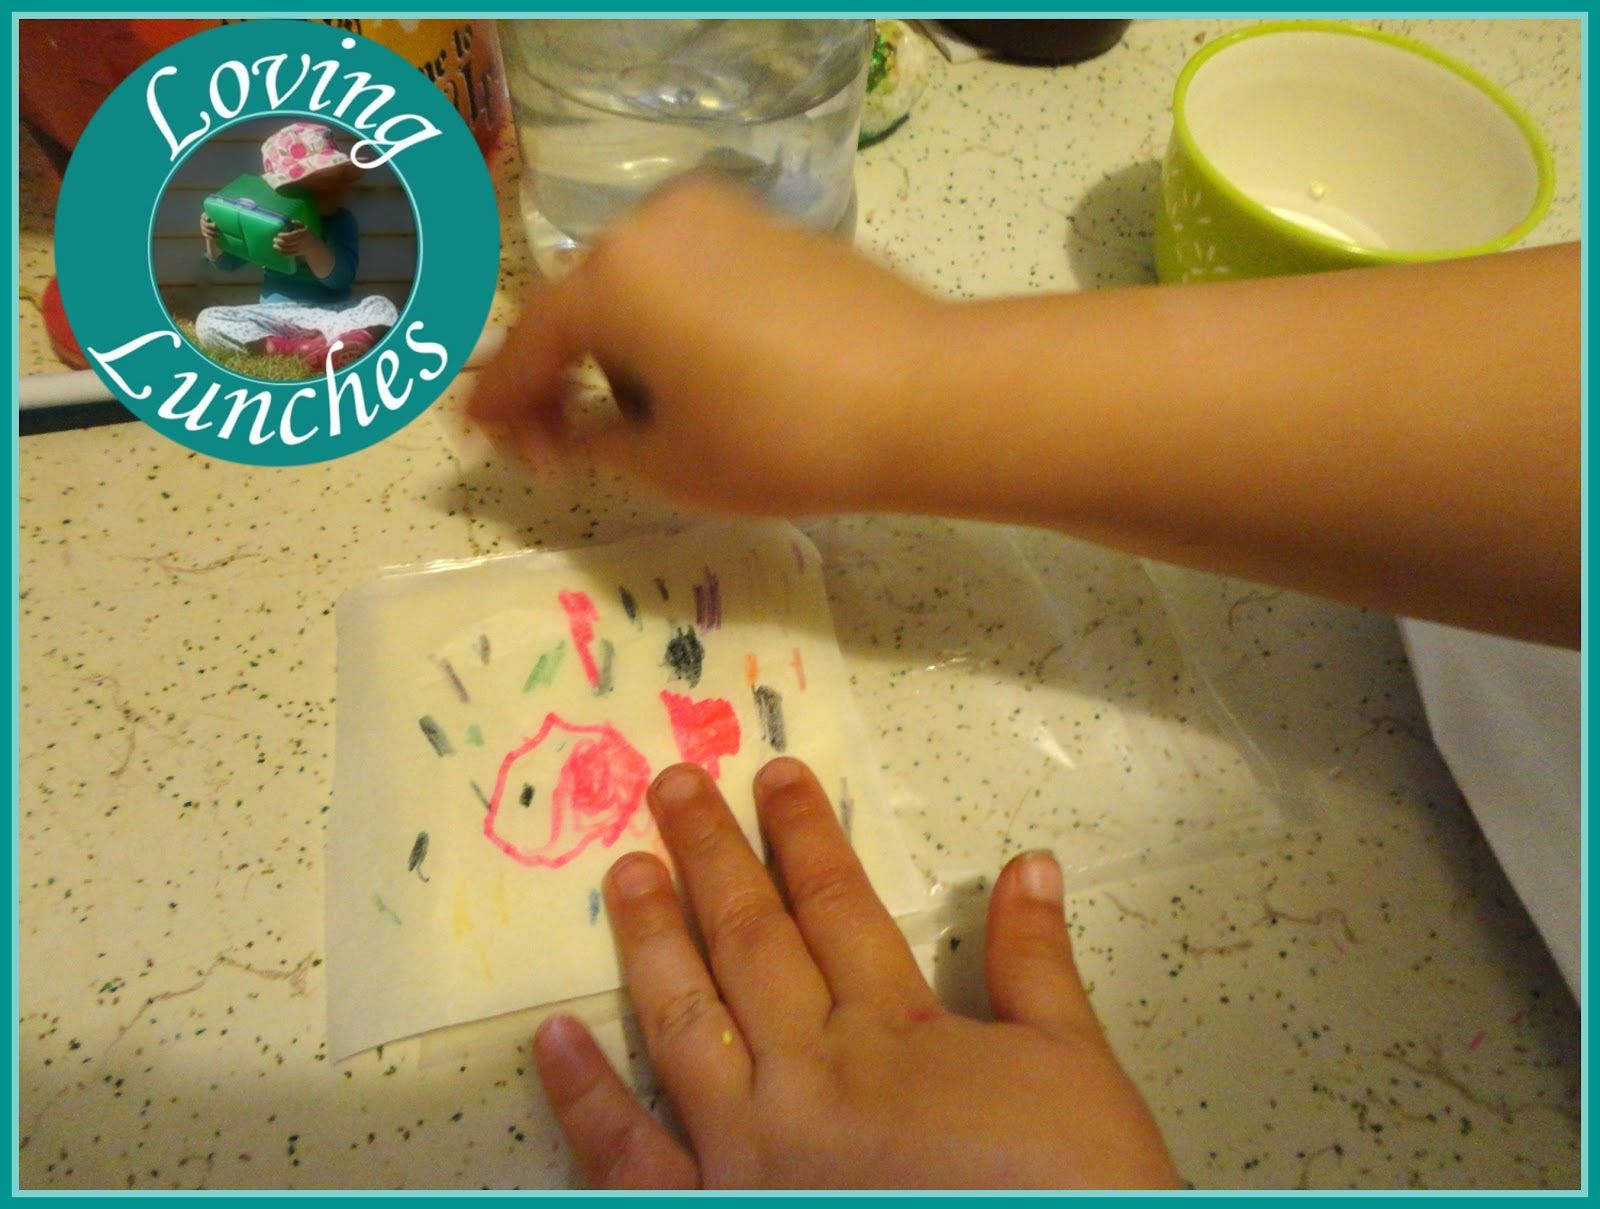 Thunder and the House of Magic Lunches kids in the kitchen cheese art